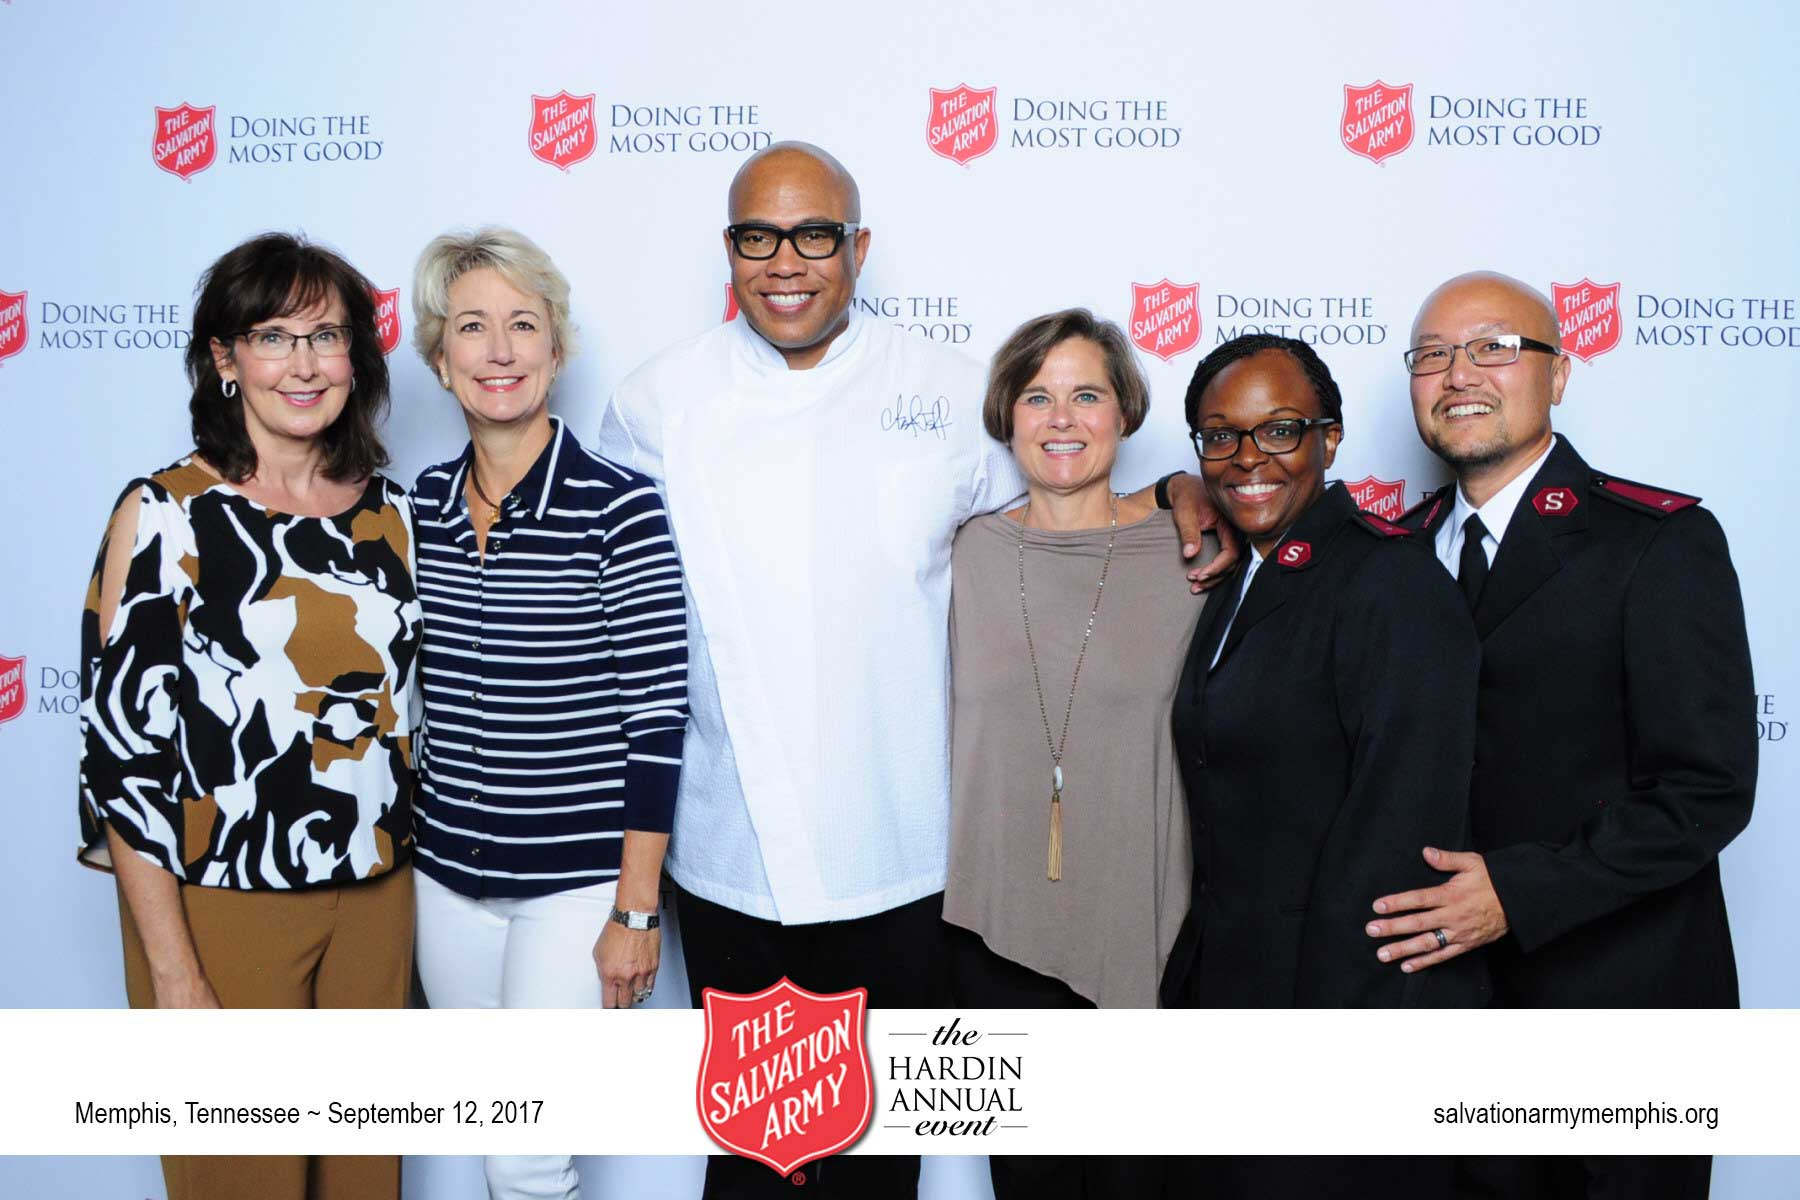 Chef Jeff Henderson at Salvation Army Annual Hardin Event